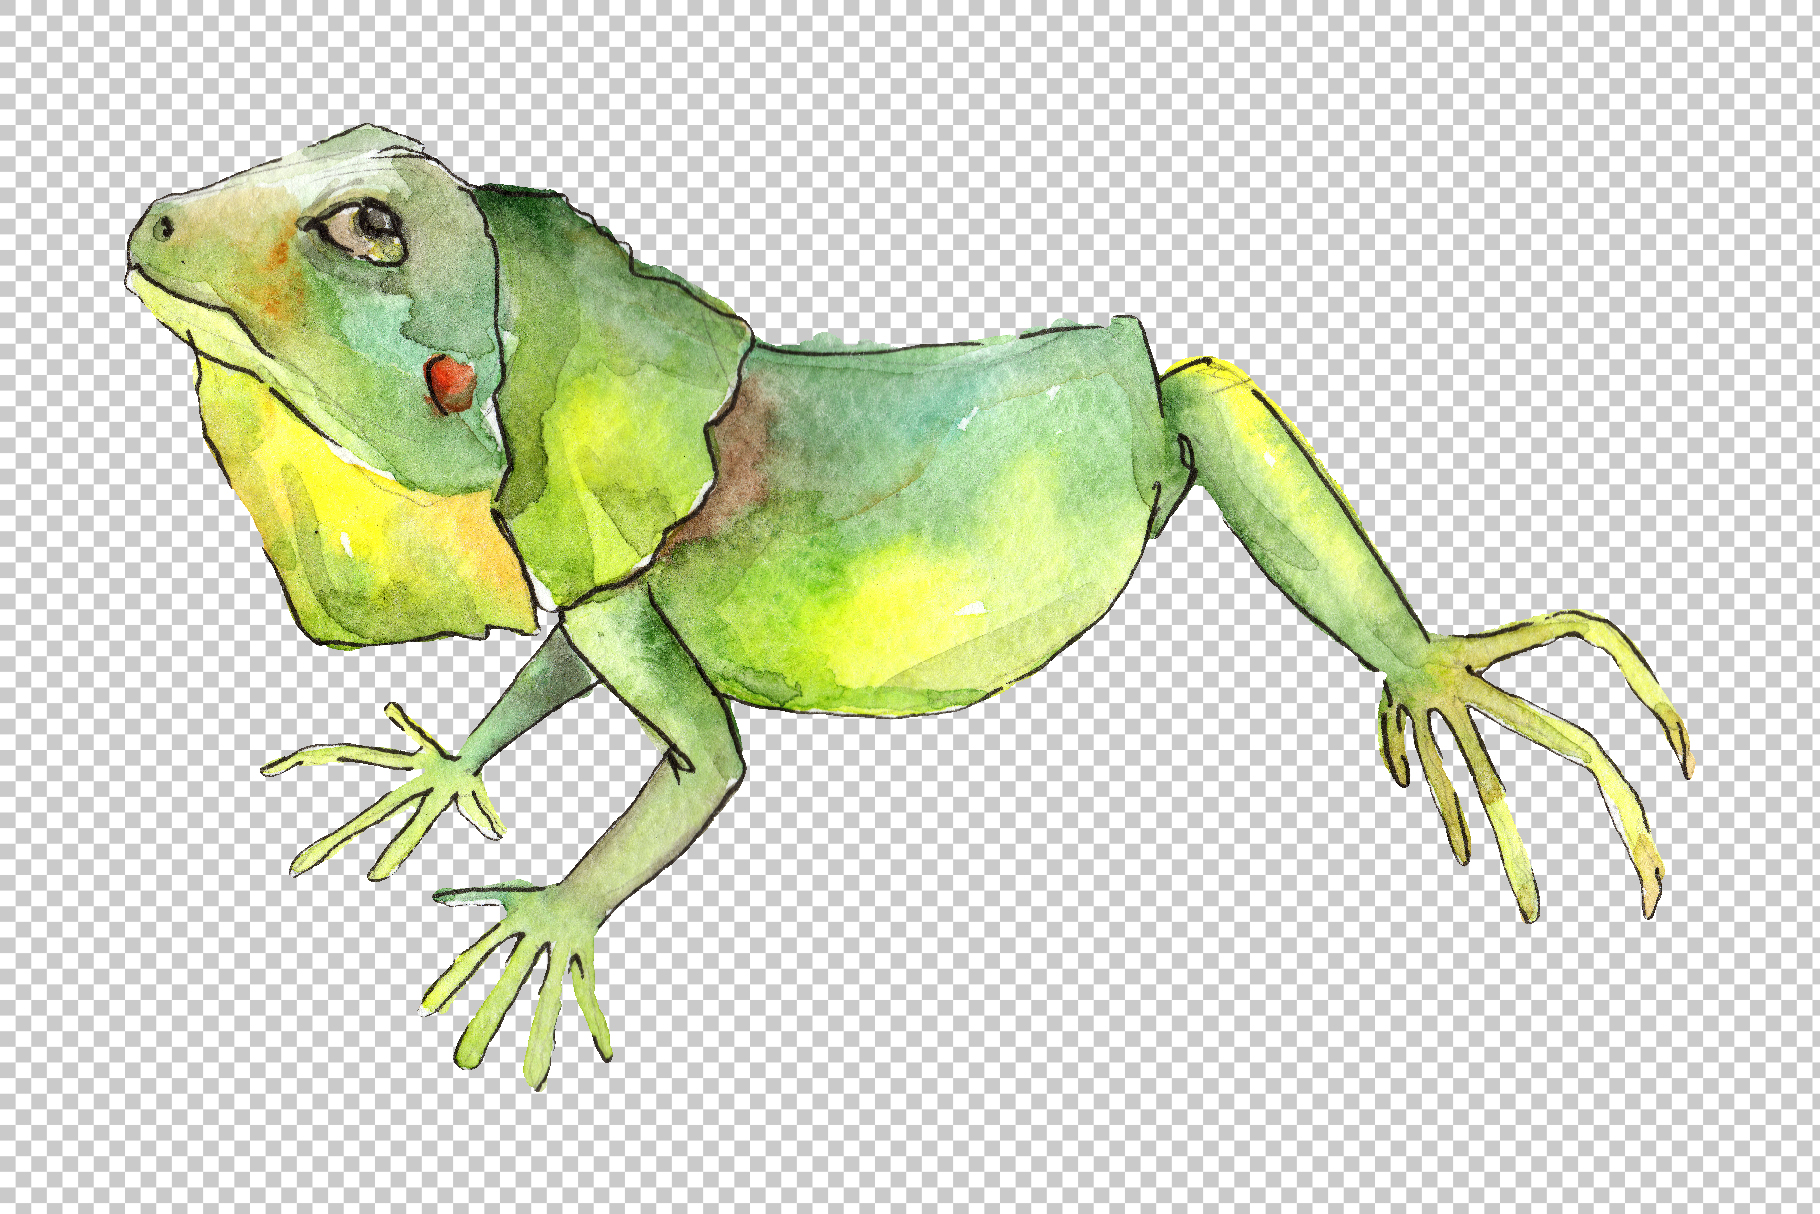 Iguana-1 Watercolor png example image 4